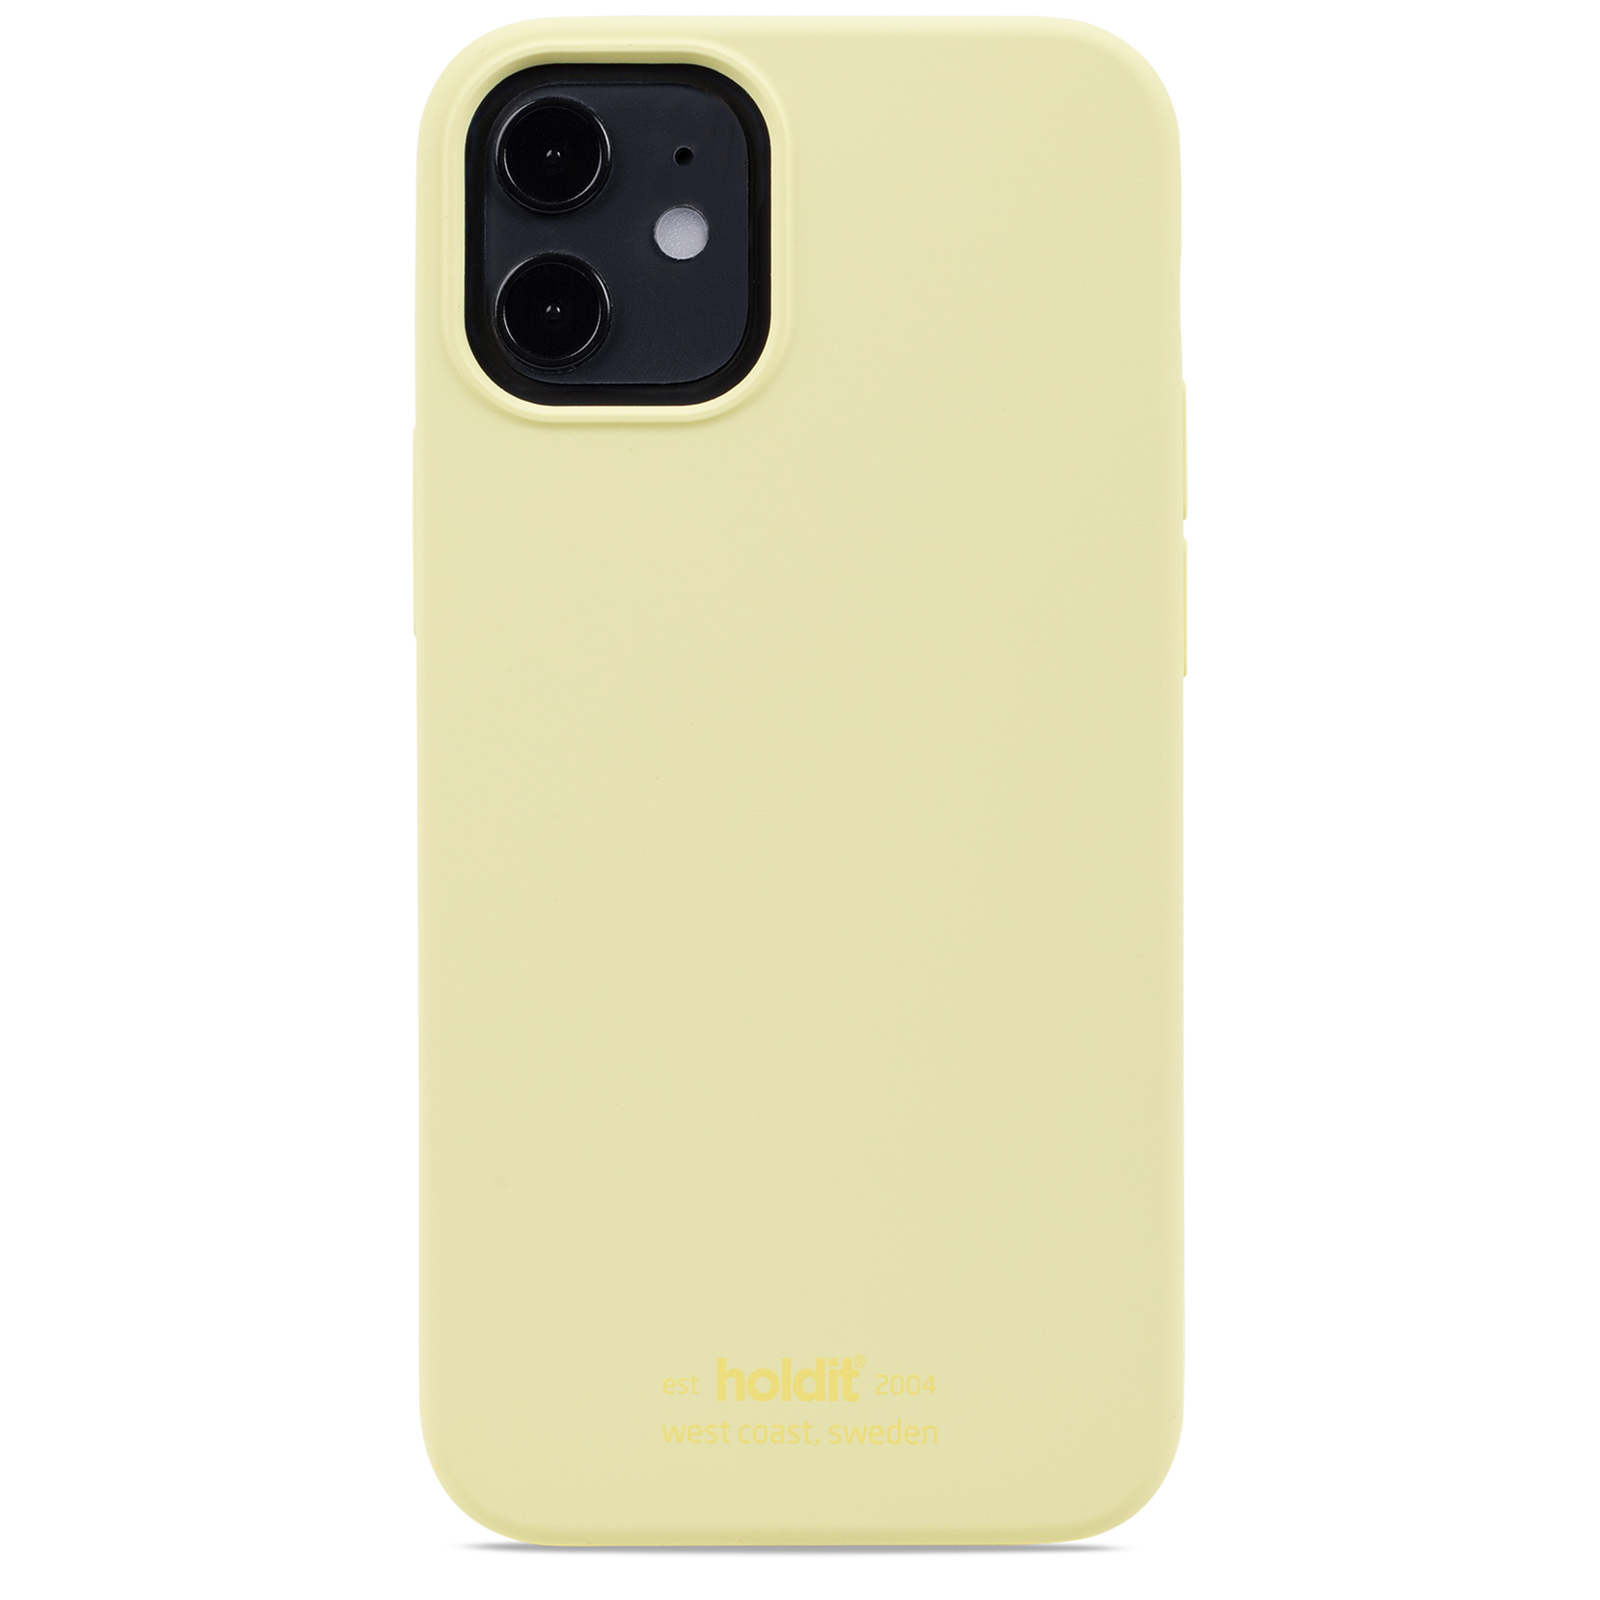 Holdit Mobilcover iPhone 12 Mini